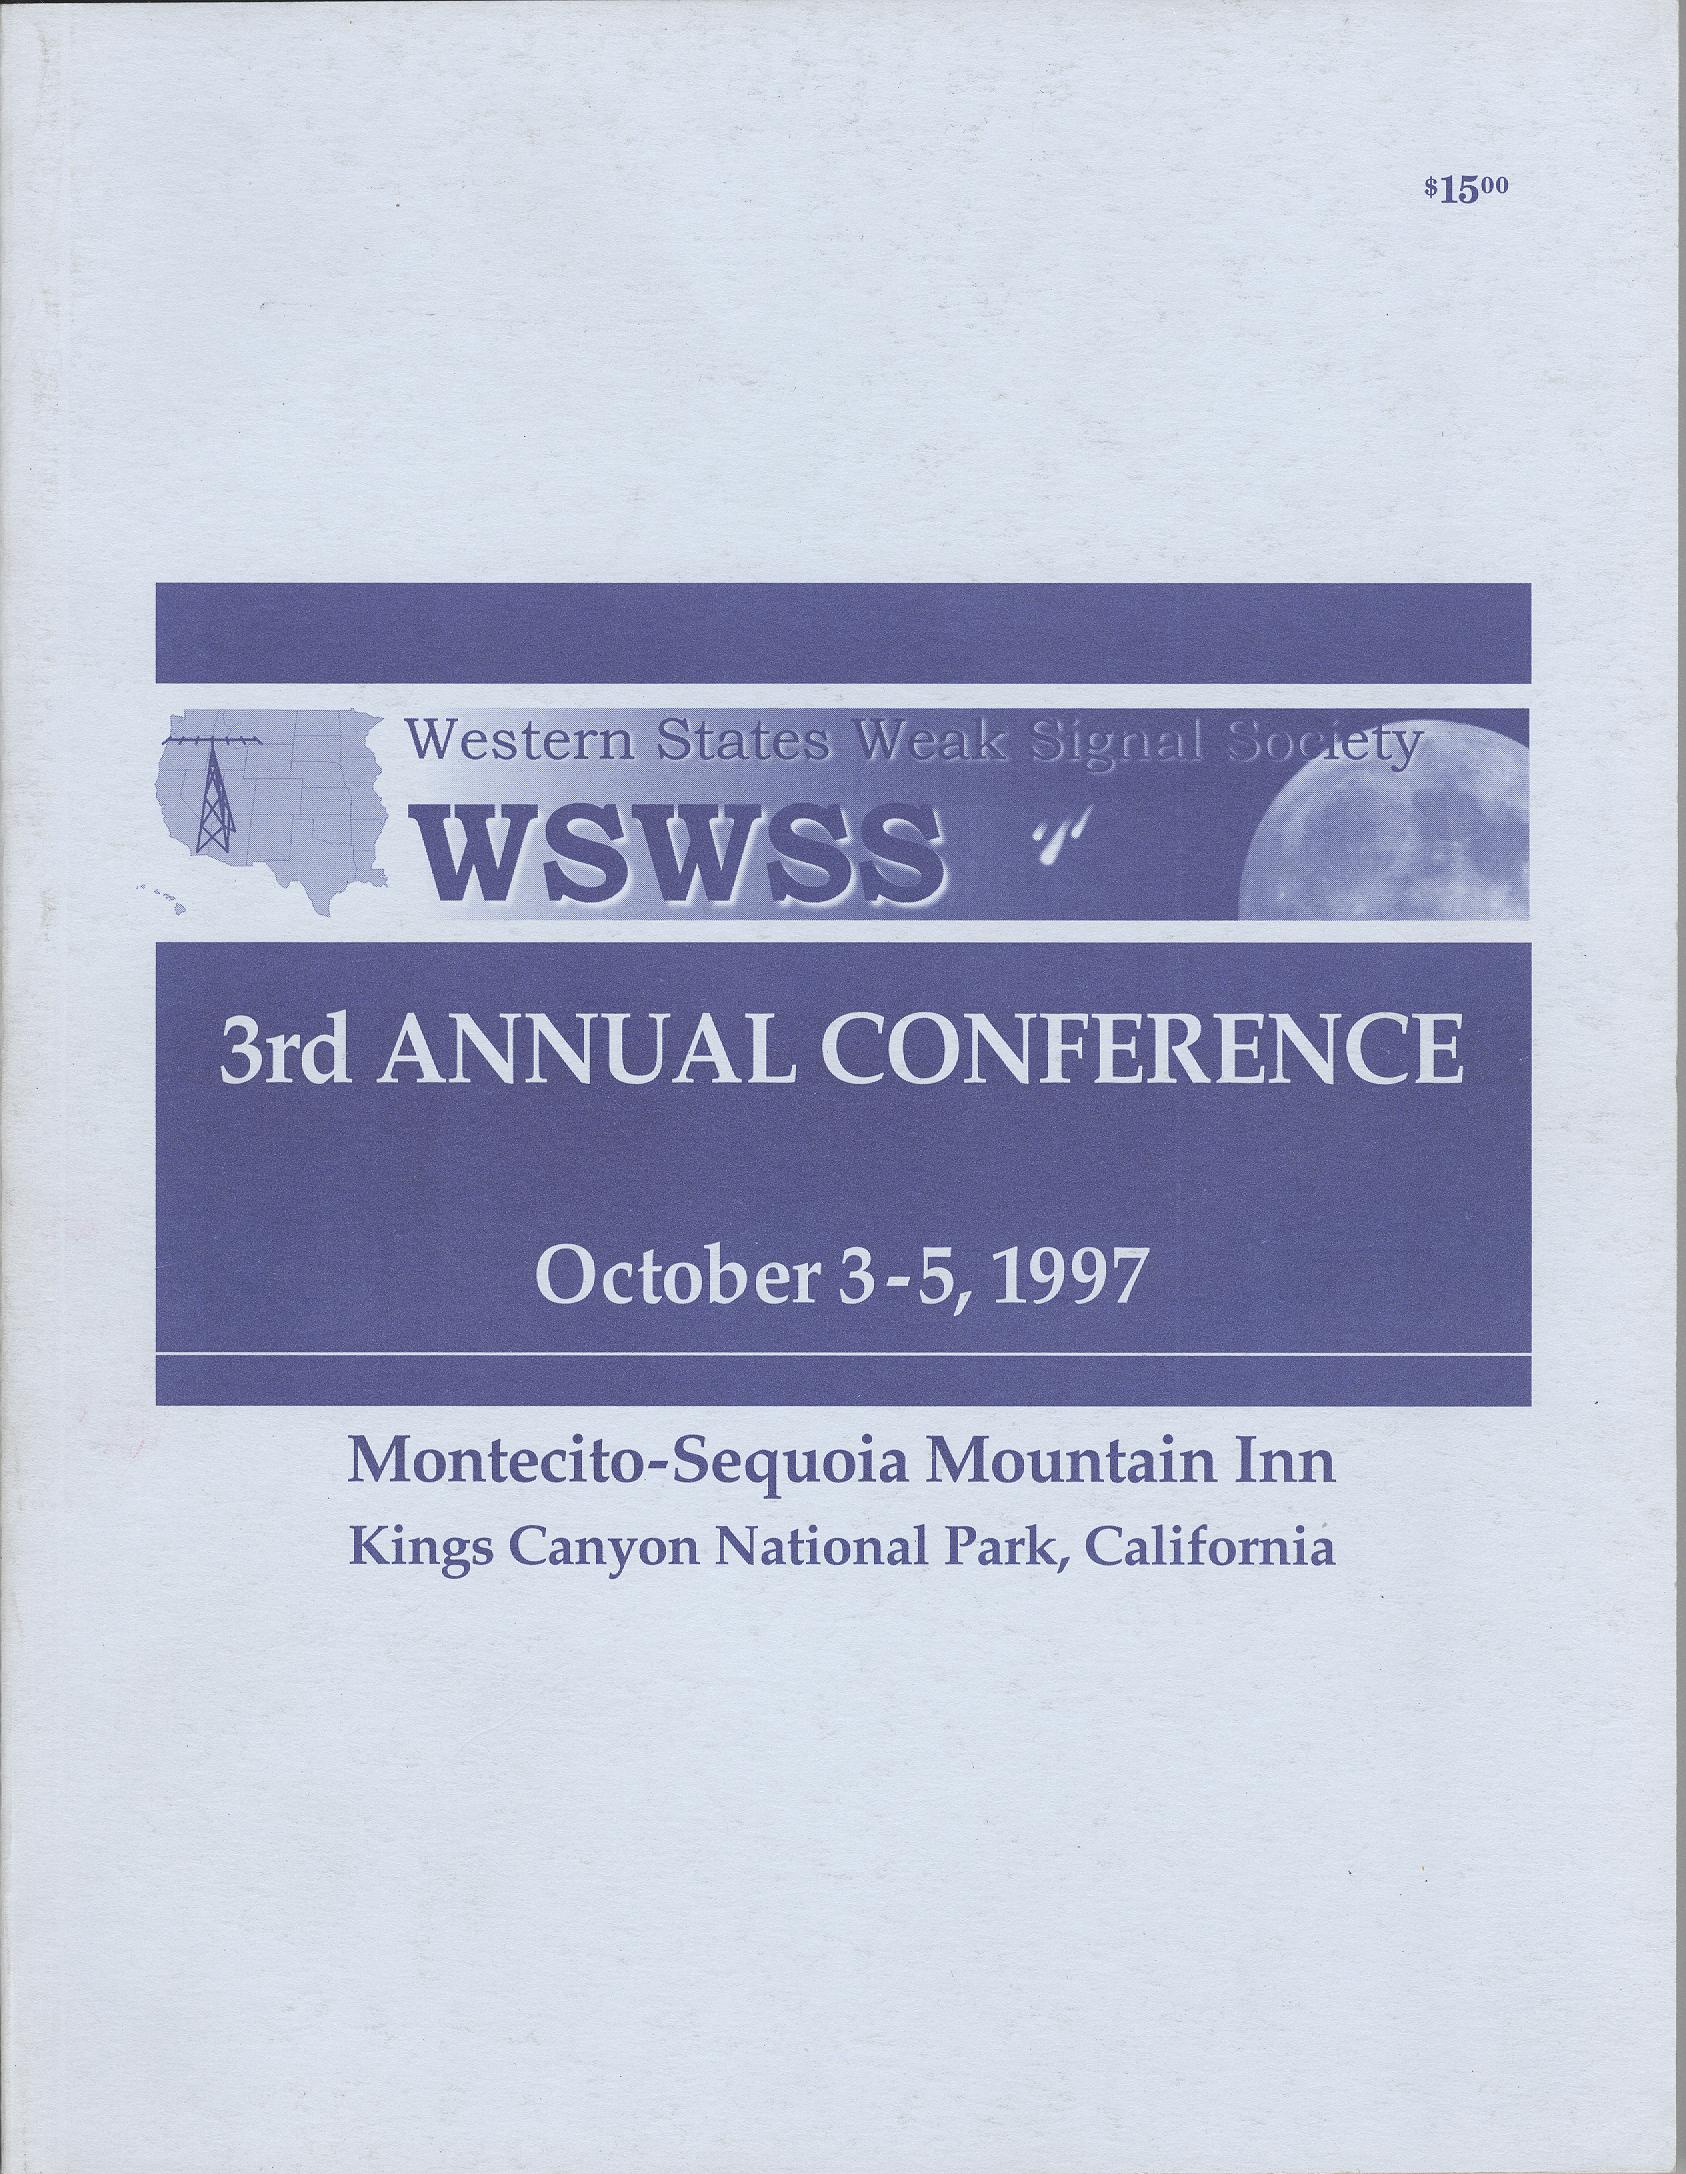 Proceedings of the 3rd Western States Weak Signal Society Annual Conference 1997